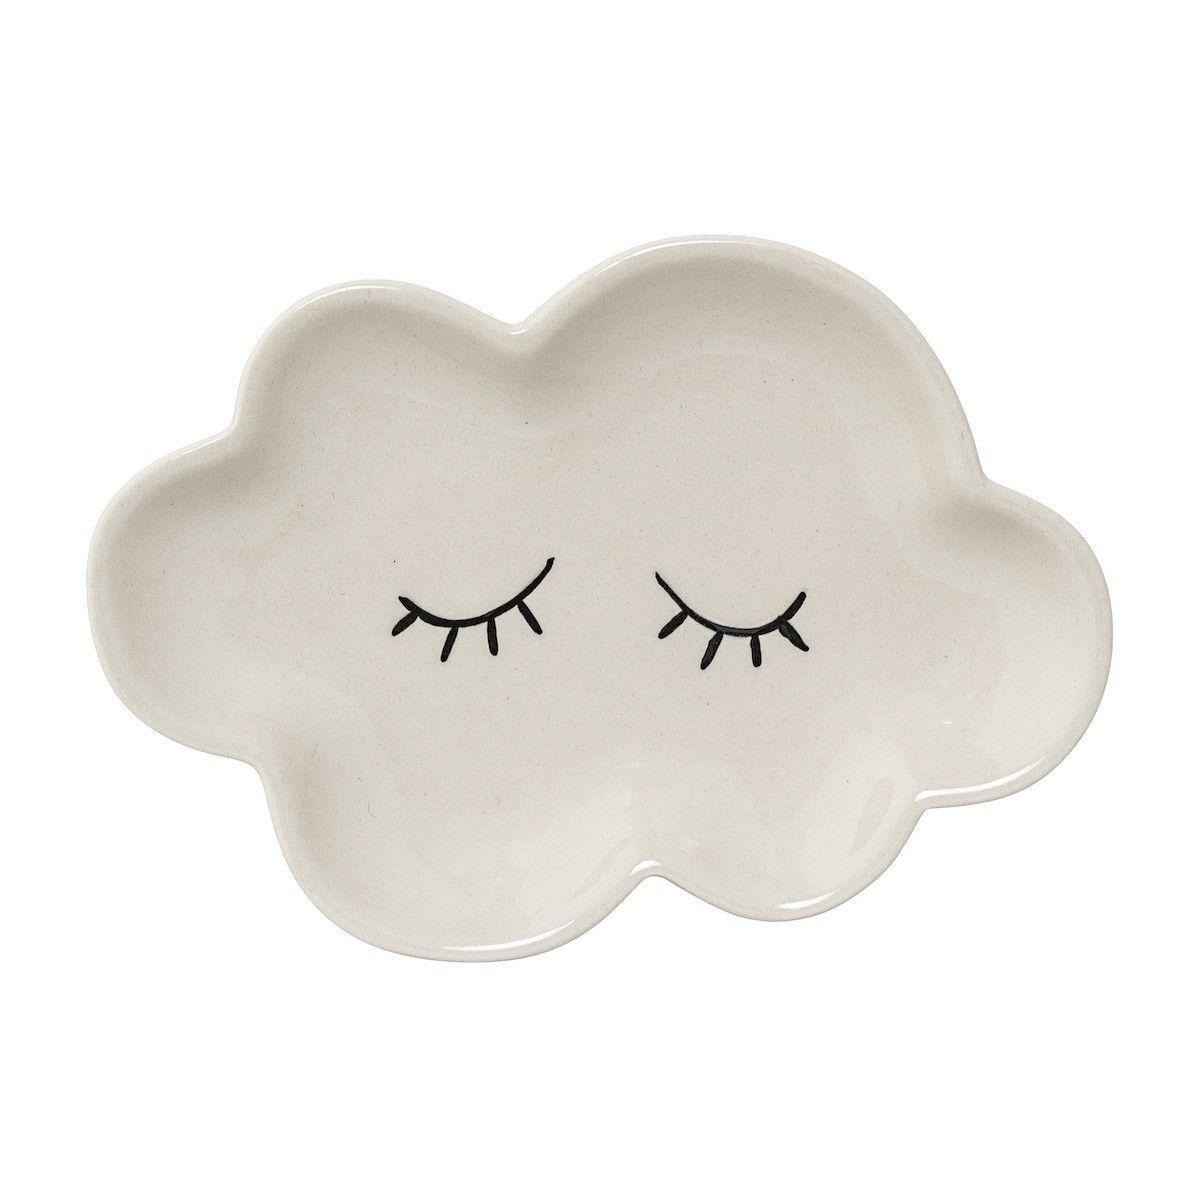 Bloomingville Plate Cloud Smilla white